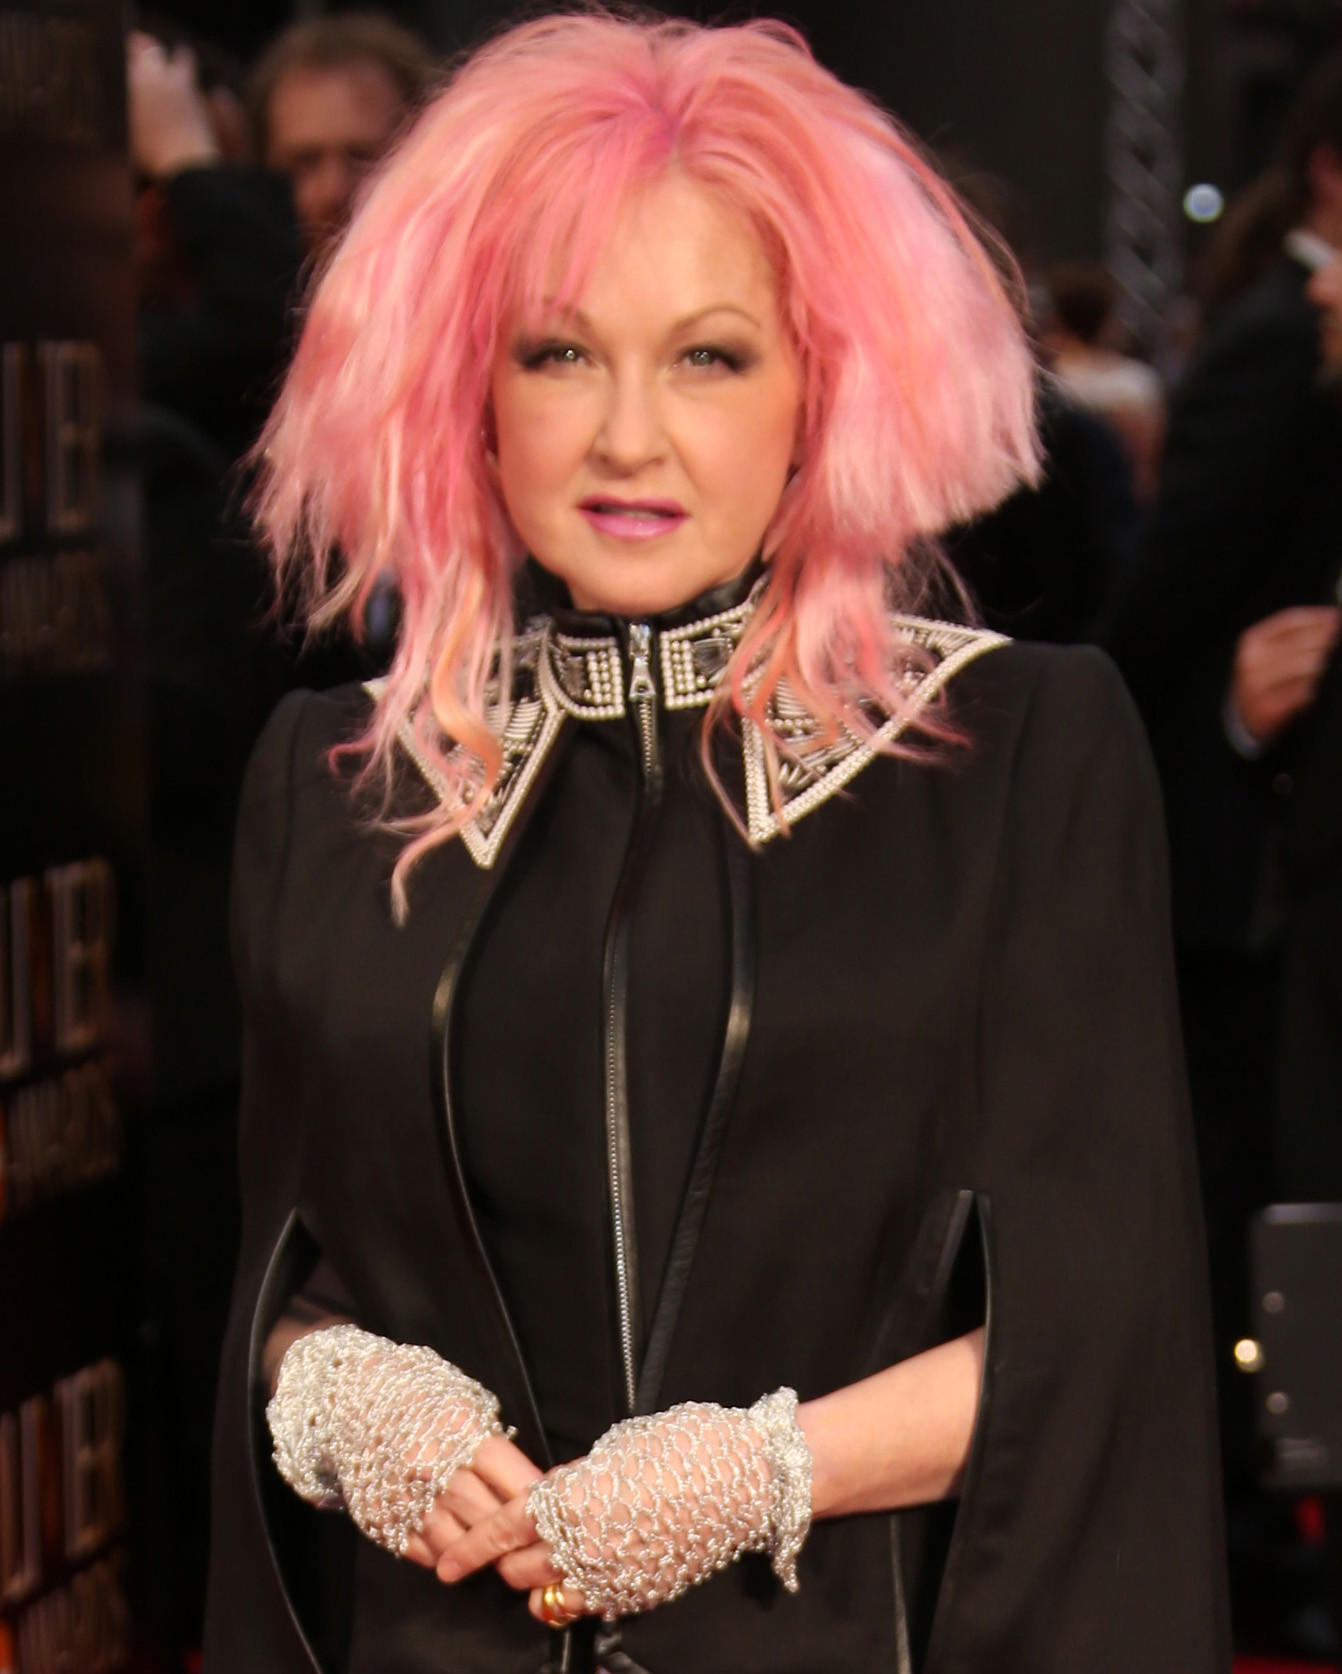 Cyndi Lauper at the Olivier Awards in London on April 3, 2016.